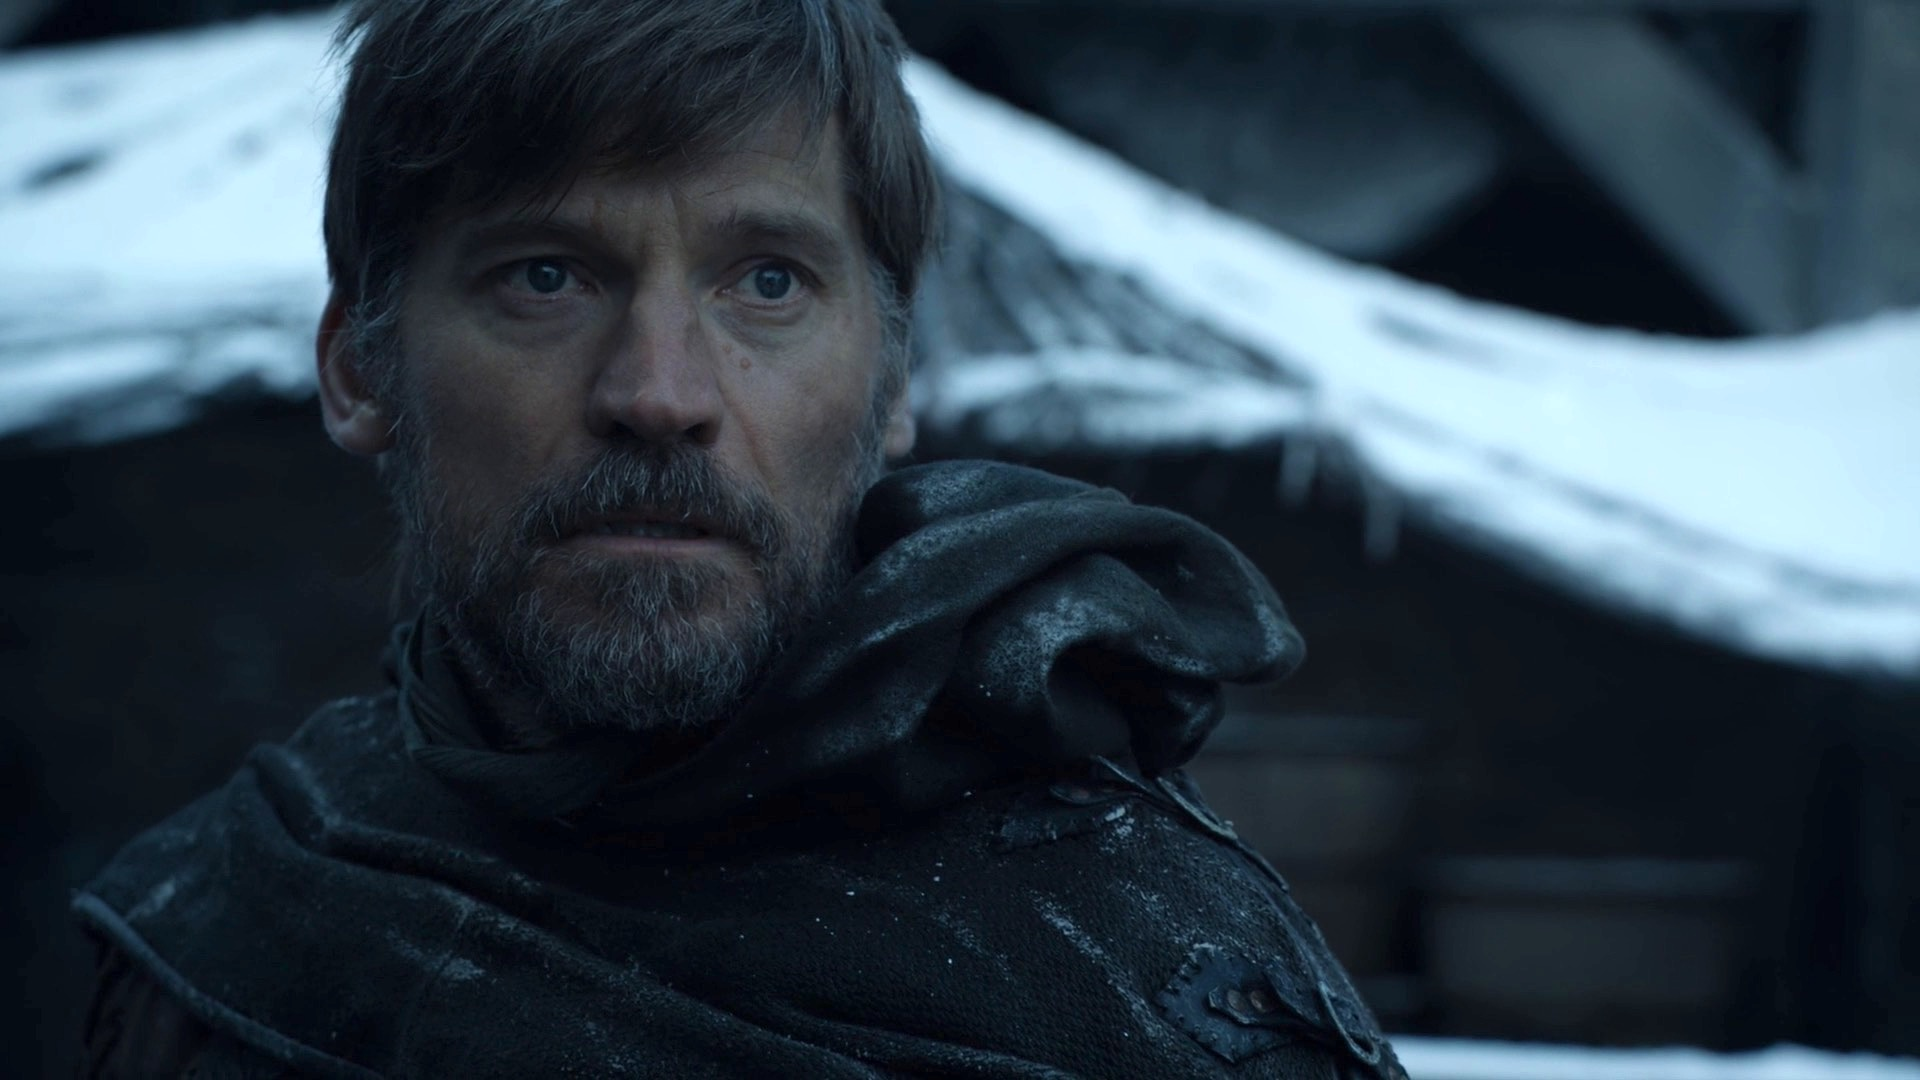 Game of Thrones finale: who won, who died, what's next, and what's left